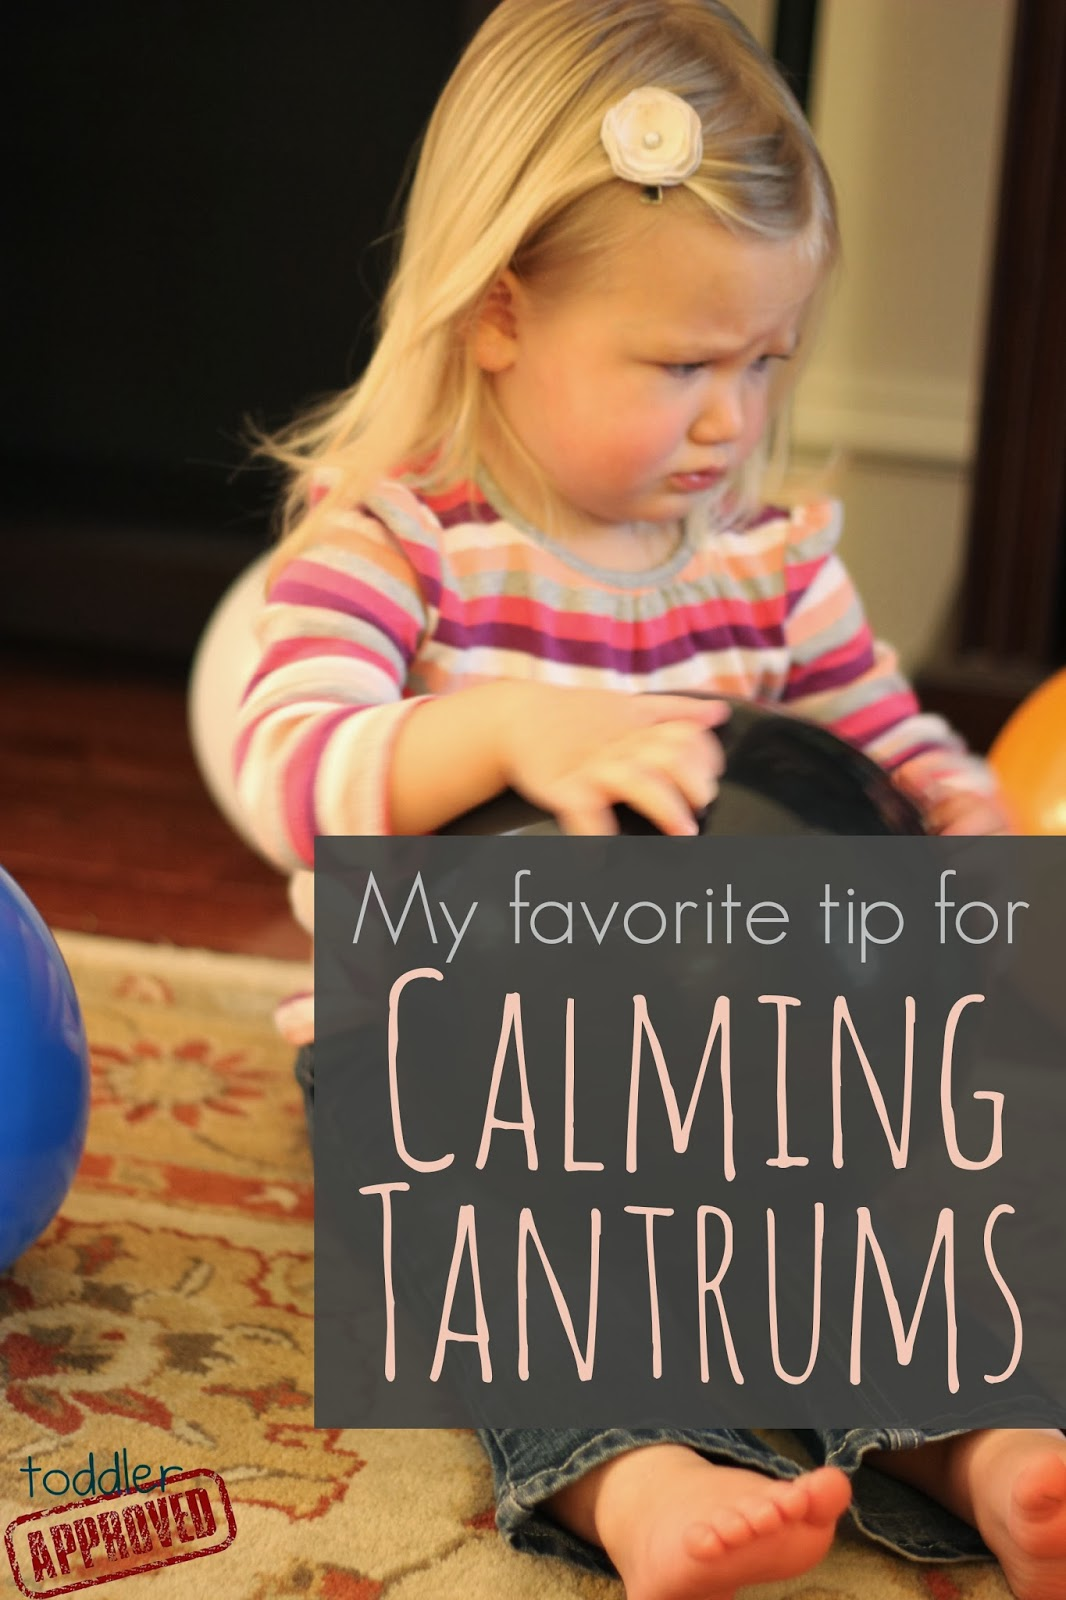 Wanted to share with you my absolute favorite tip for calming tantrums